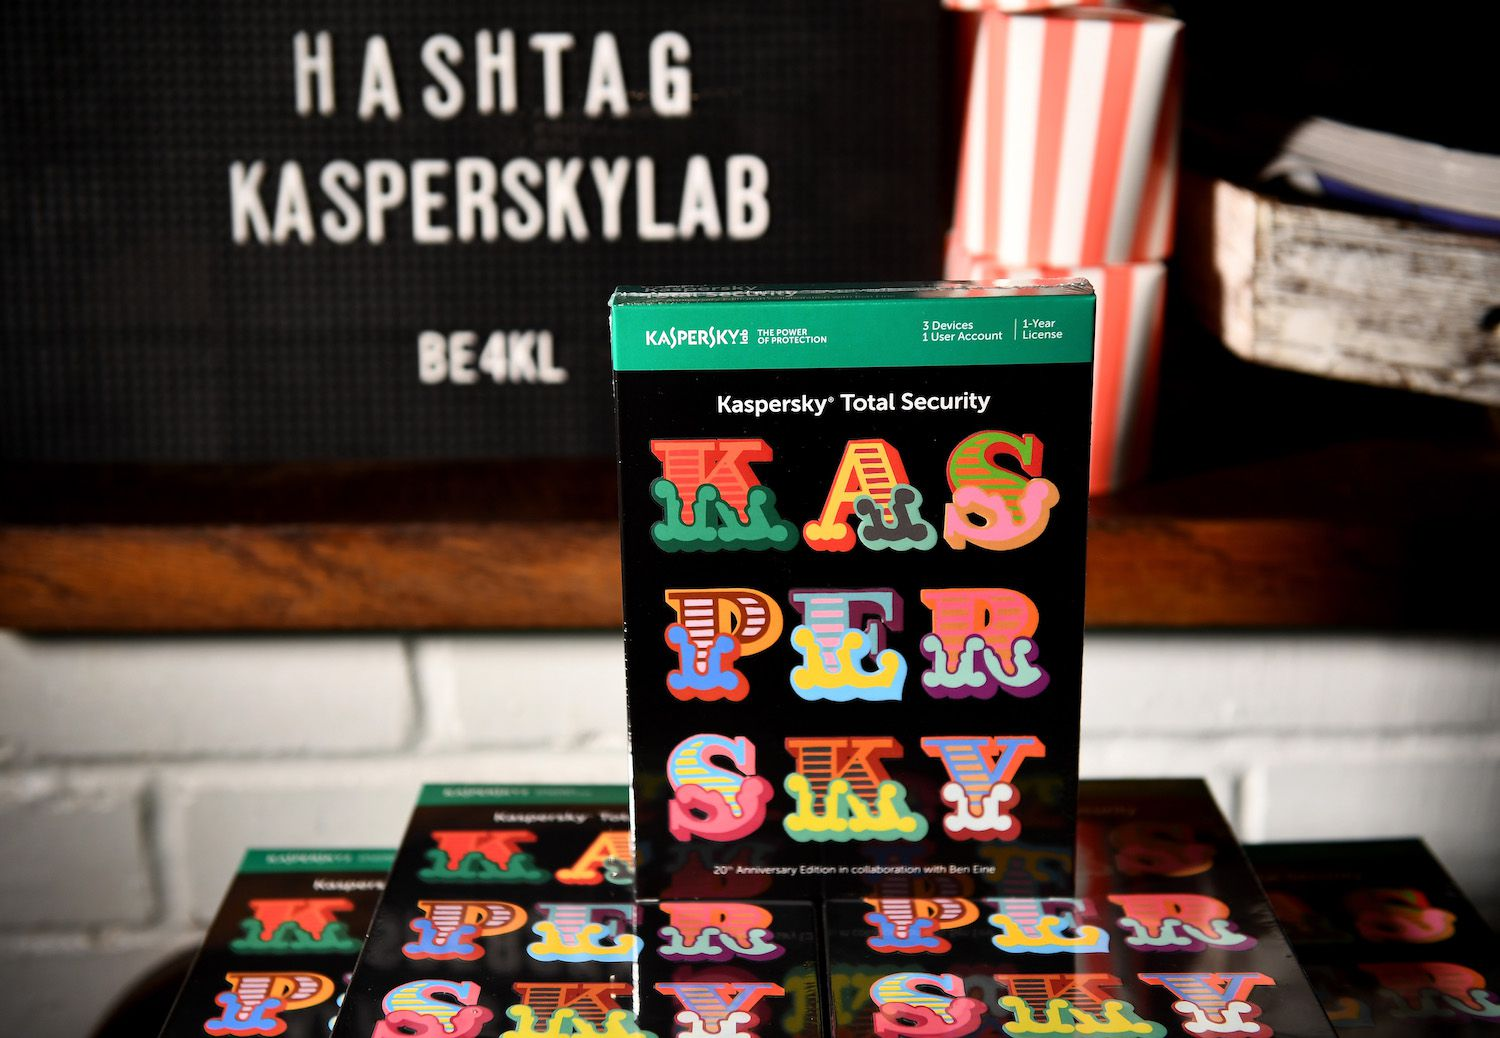 """LONDON, ENGLAND - OCTOBER 04:  A general view ahead of the launch of the ad campaign film """"Back To Work"""", sealing the artistic collaboration between Kaspersky Lab and Ben Eine, on the cybersecurity company's 20th anniversary celebration year at the Electric Cinema on October 4, 2017 in London, England. #Kaspersky20 #KL20 #BE4KL  (Photo by Ian Gavan/Getty Images)"""